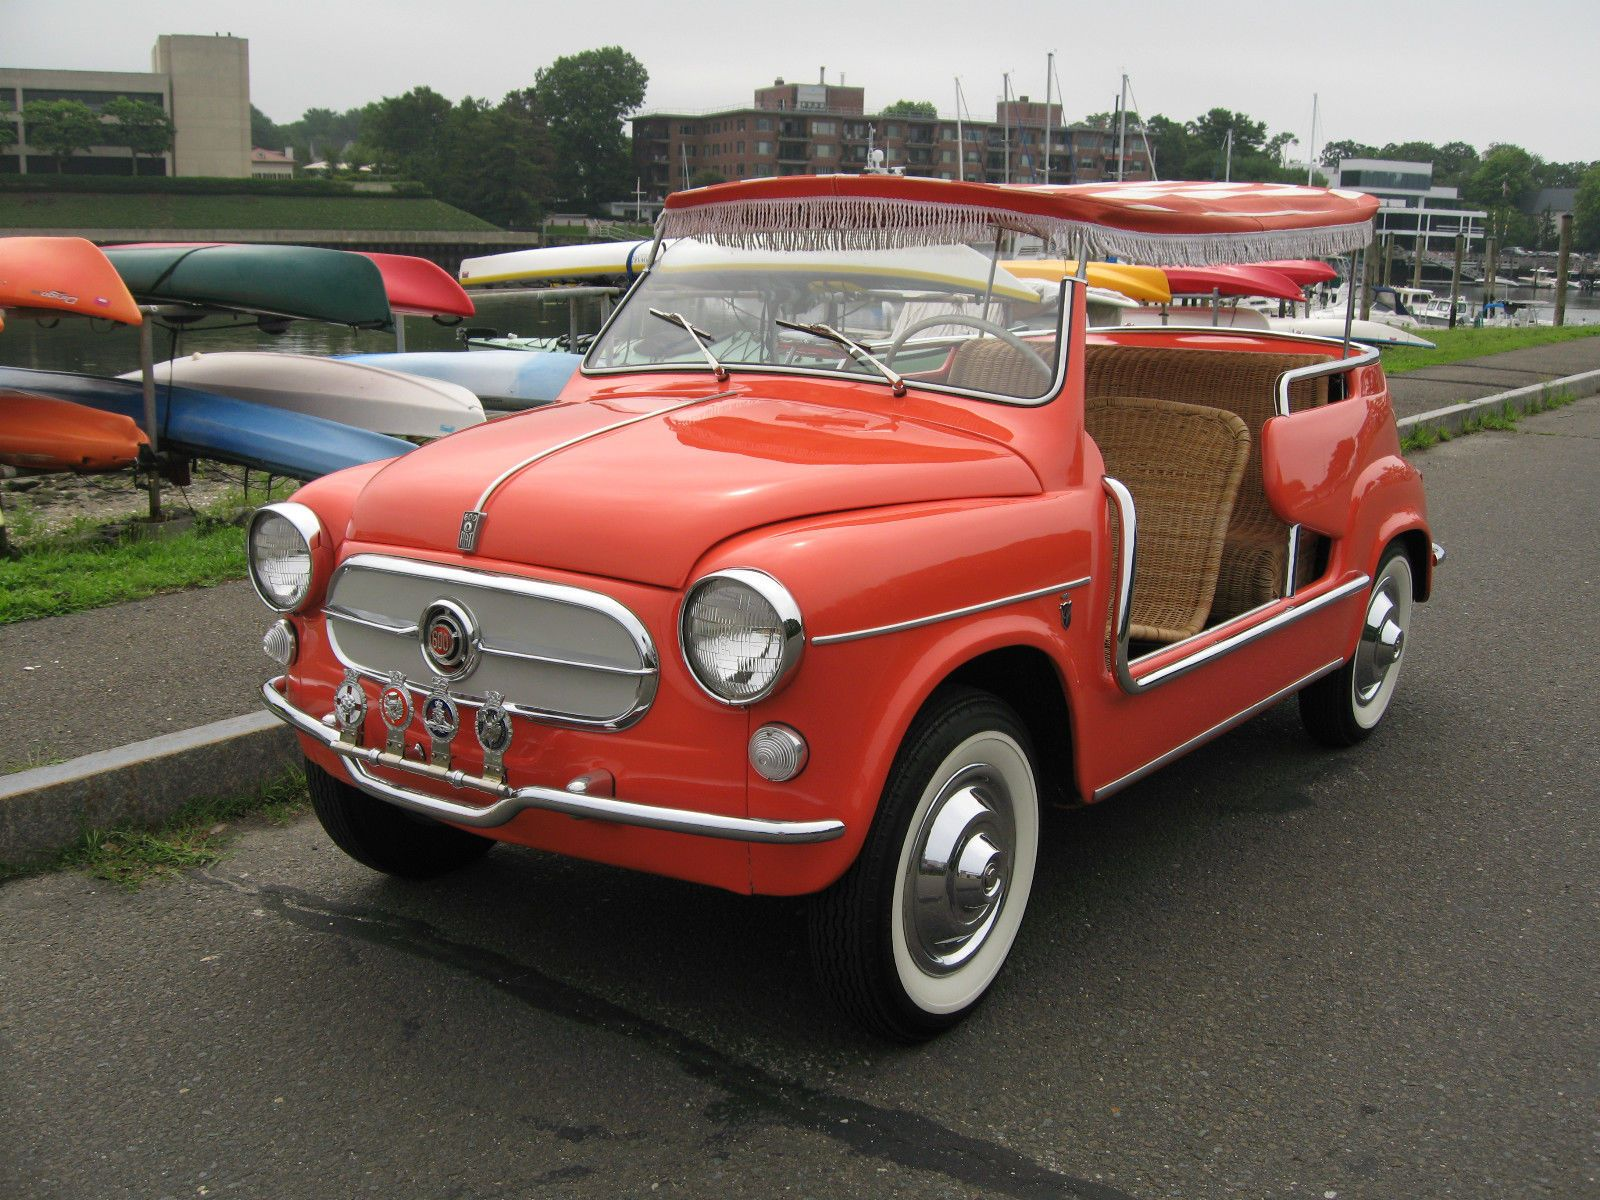 59 Fiat 600 Jolly | FIAT 500 | Pinterest | Fiat, Fiat 600 and ...